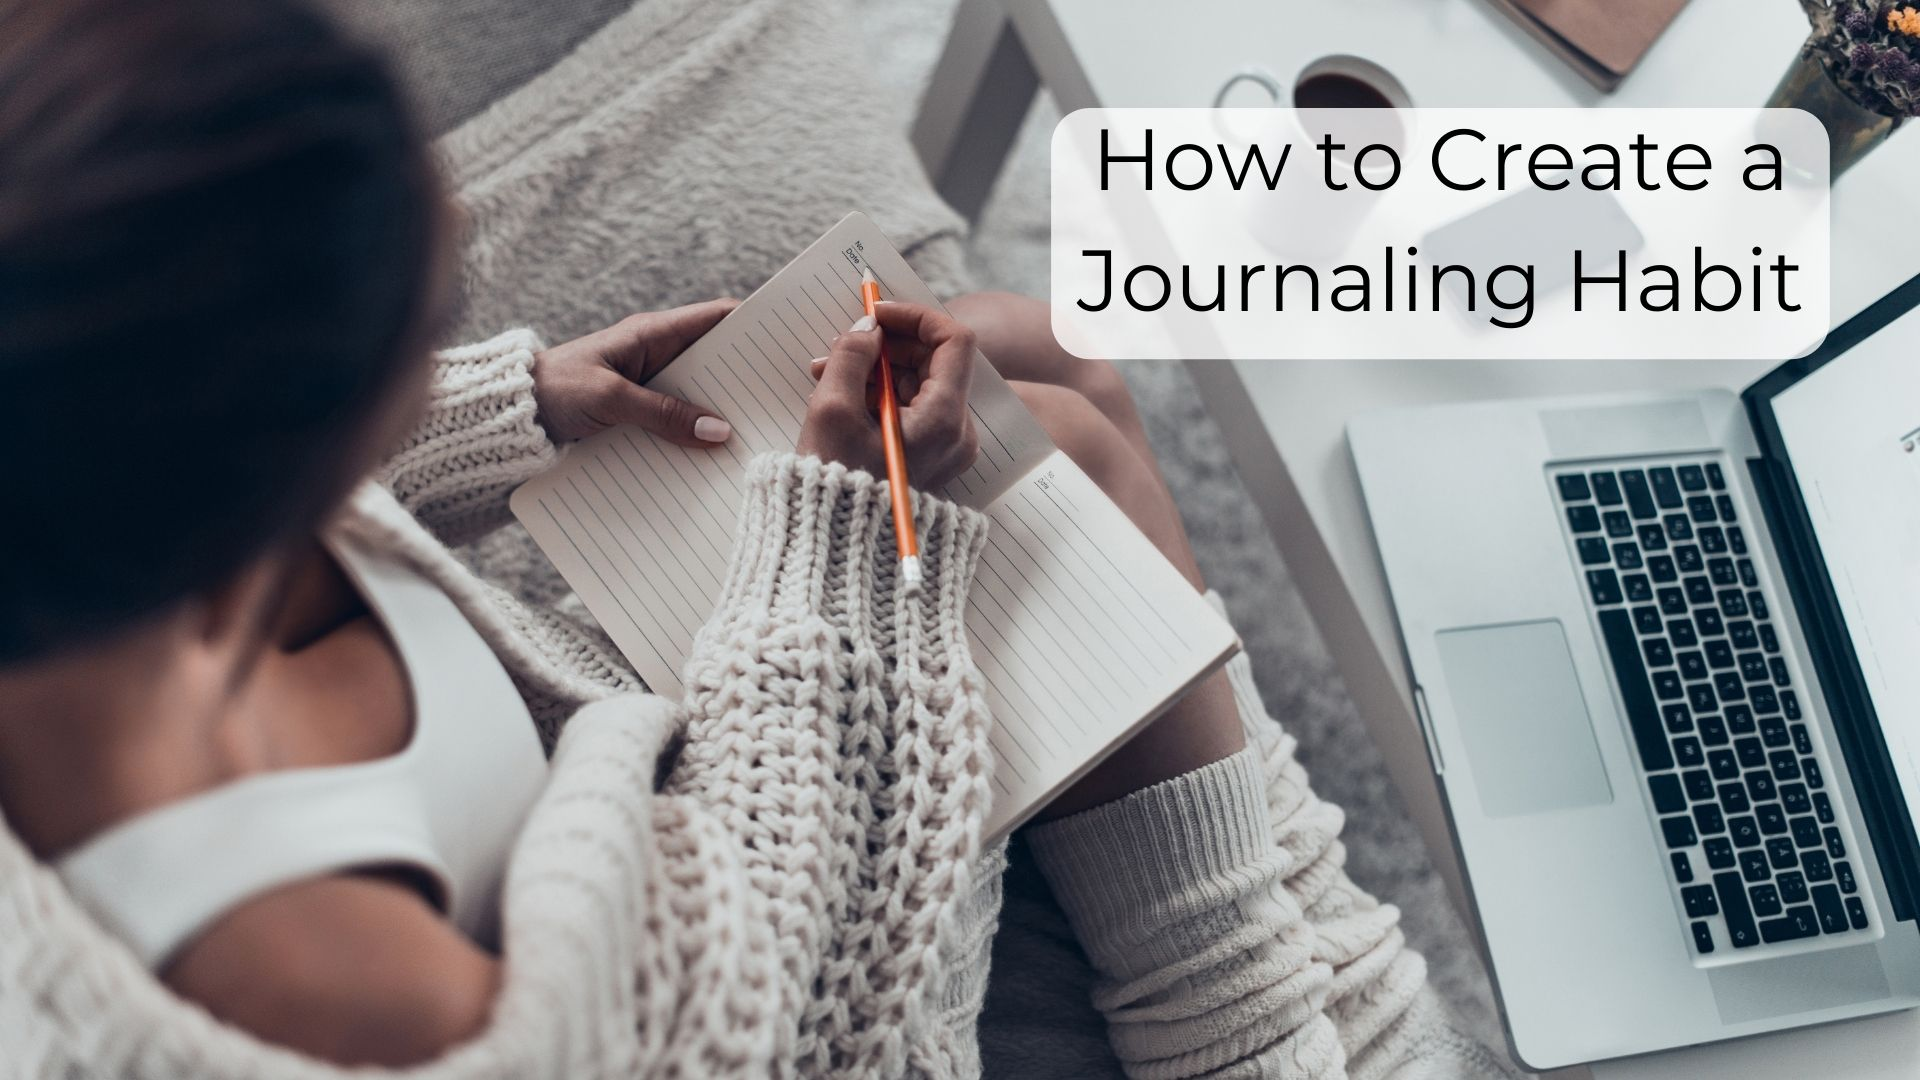 how to create a journaling habit that lasts